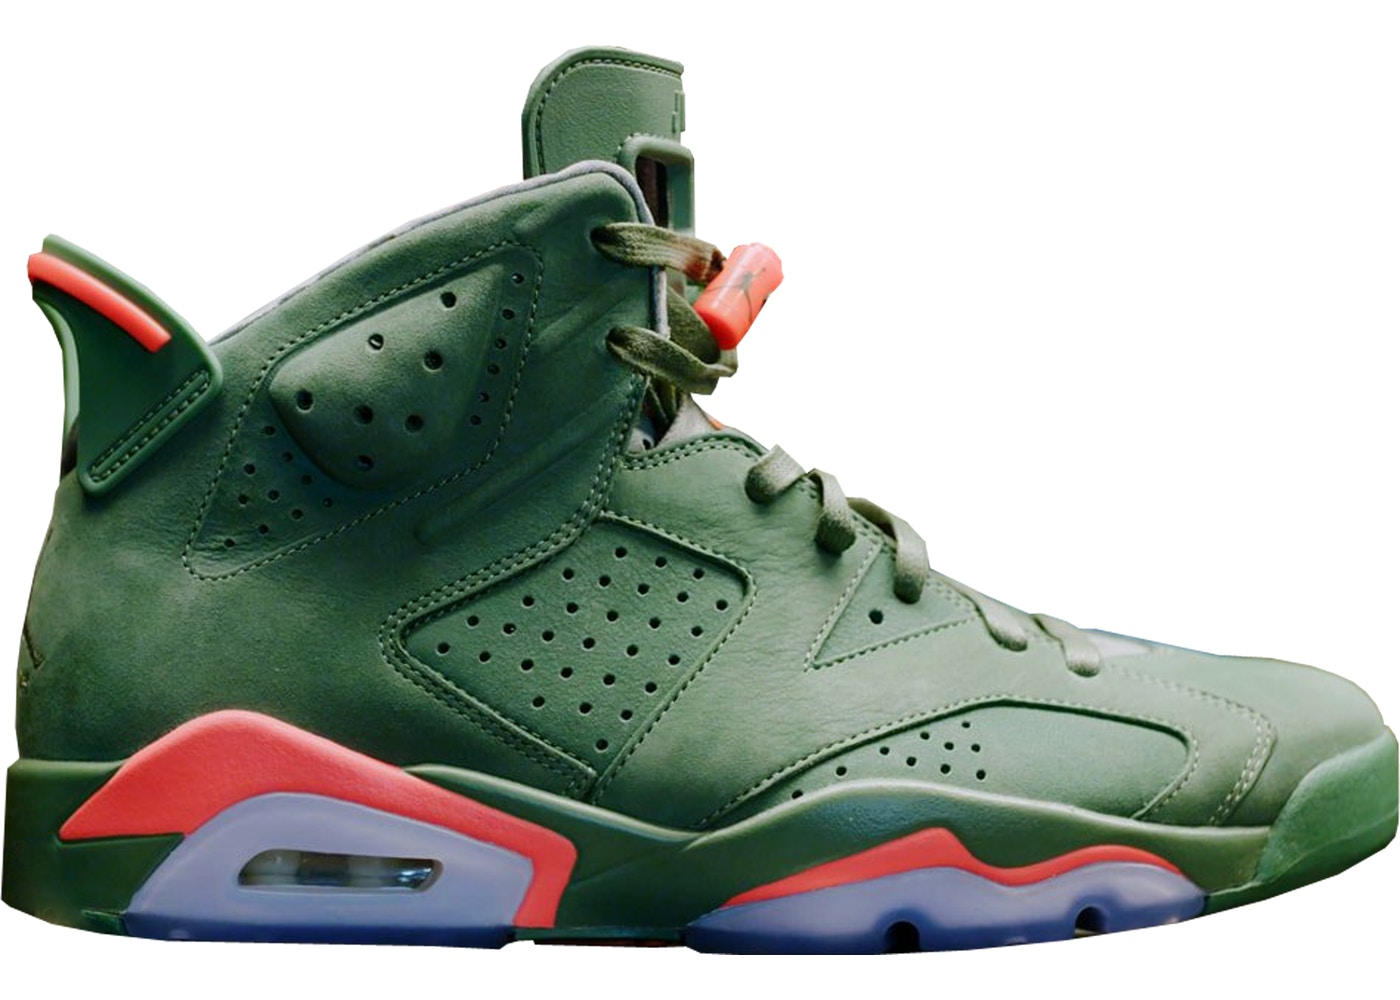 outlet store 8b97a 21728 Air Jordan 6 Size 15 Shoes - Release Date